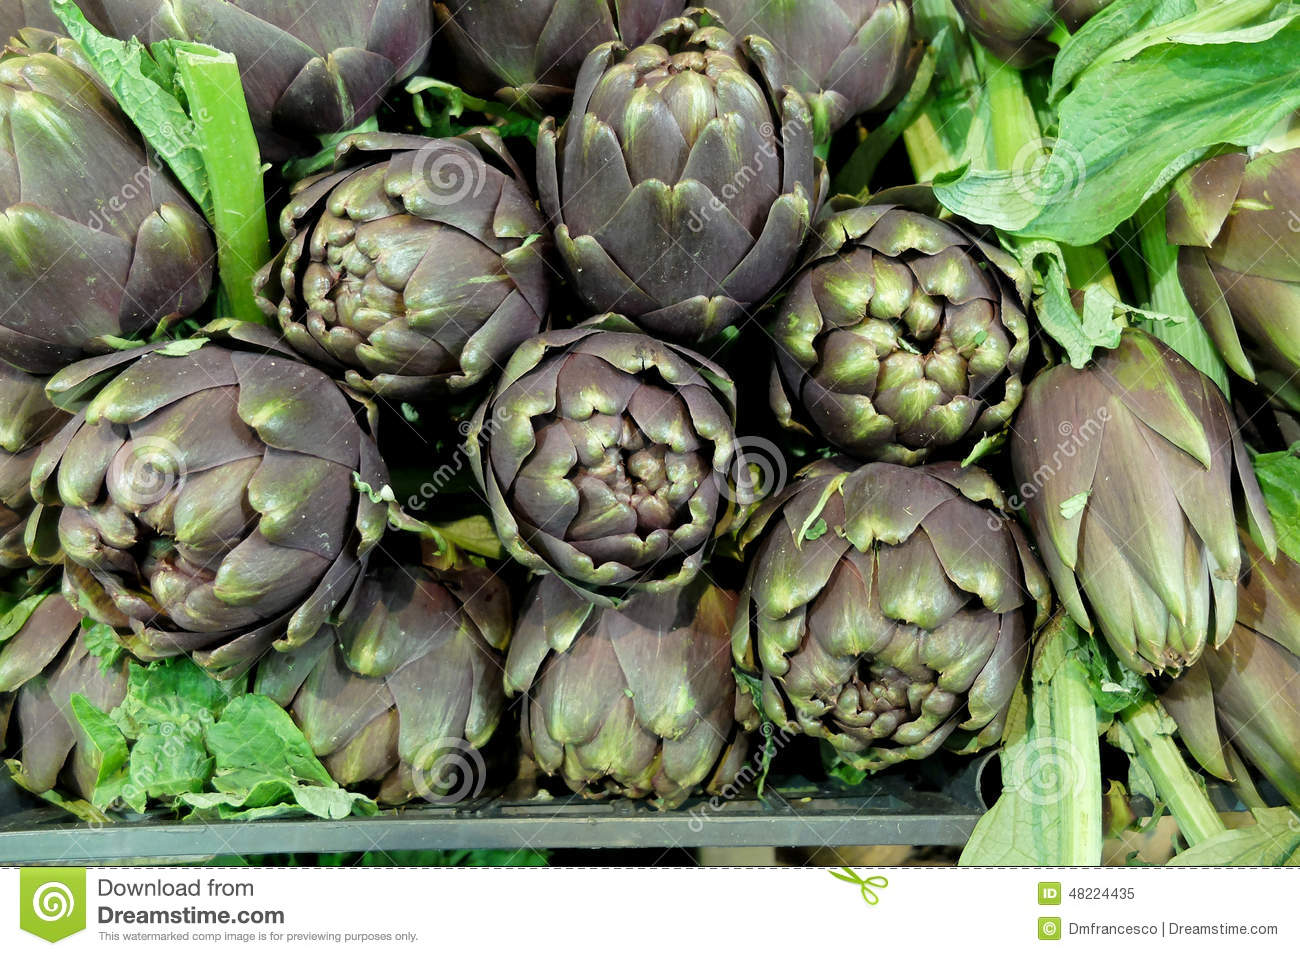 Italian fruits and vegetables stock photo image 48224435 for Green italy